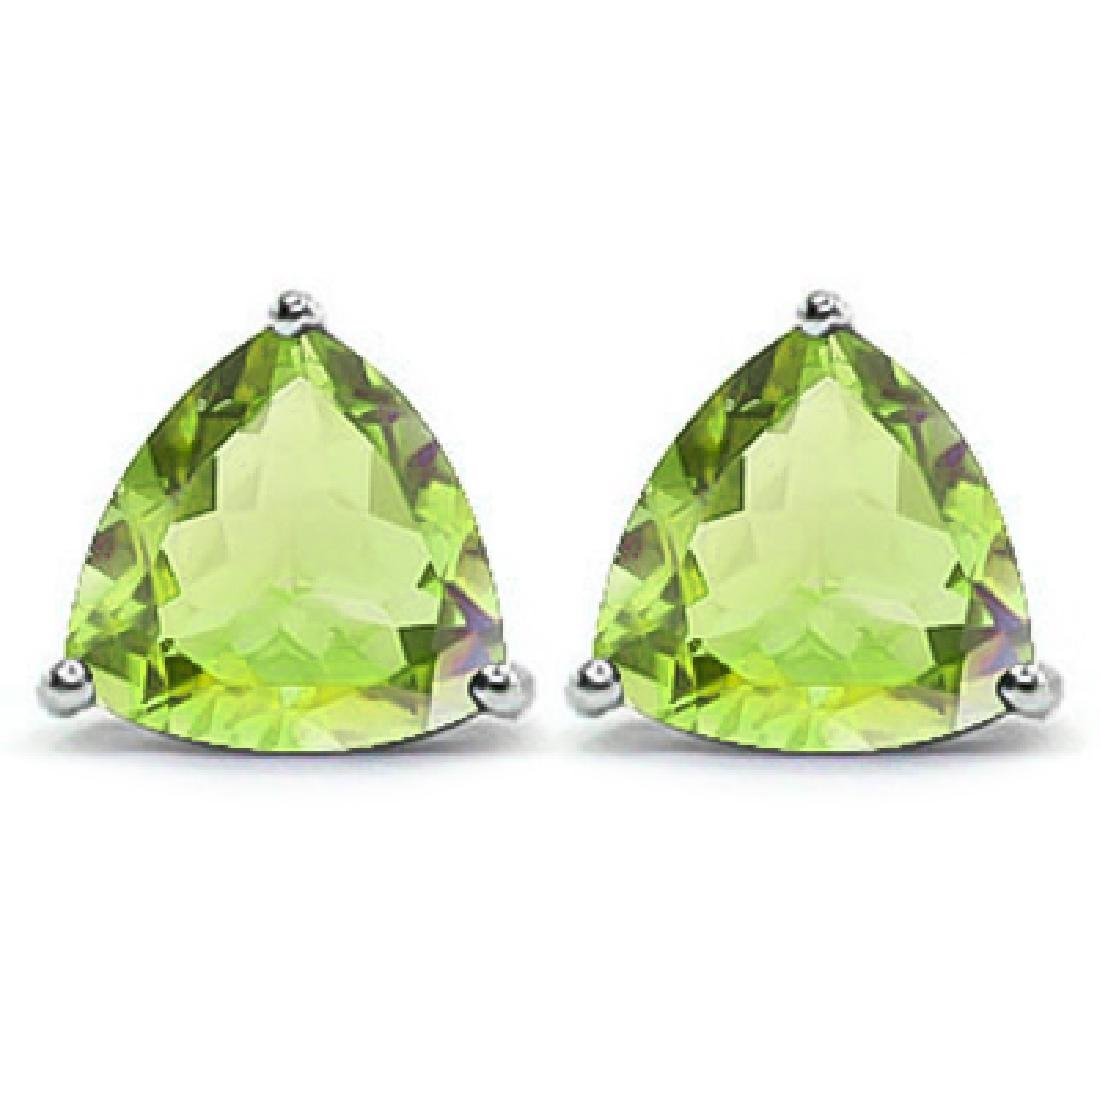 Trillion 1.5 CTW Peridot Stud Earrings in Platinum over